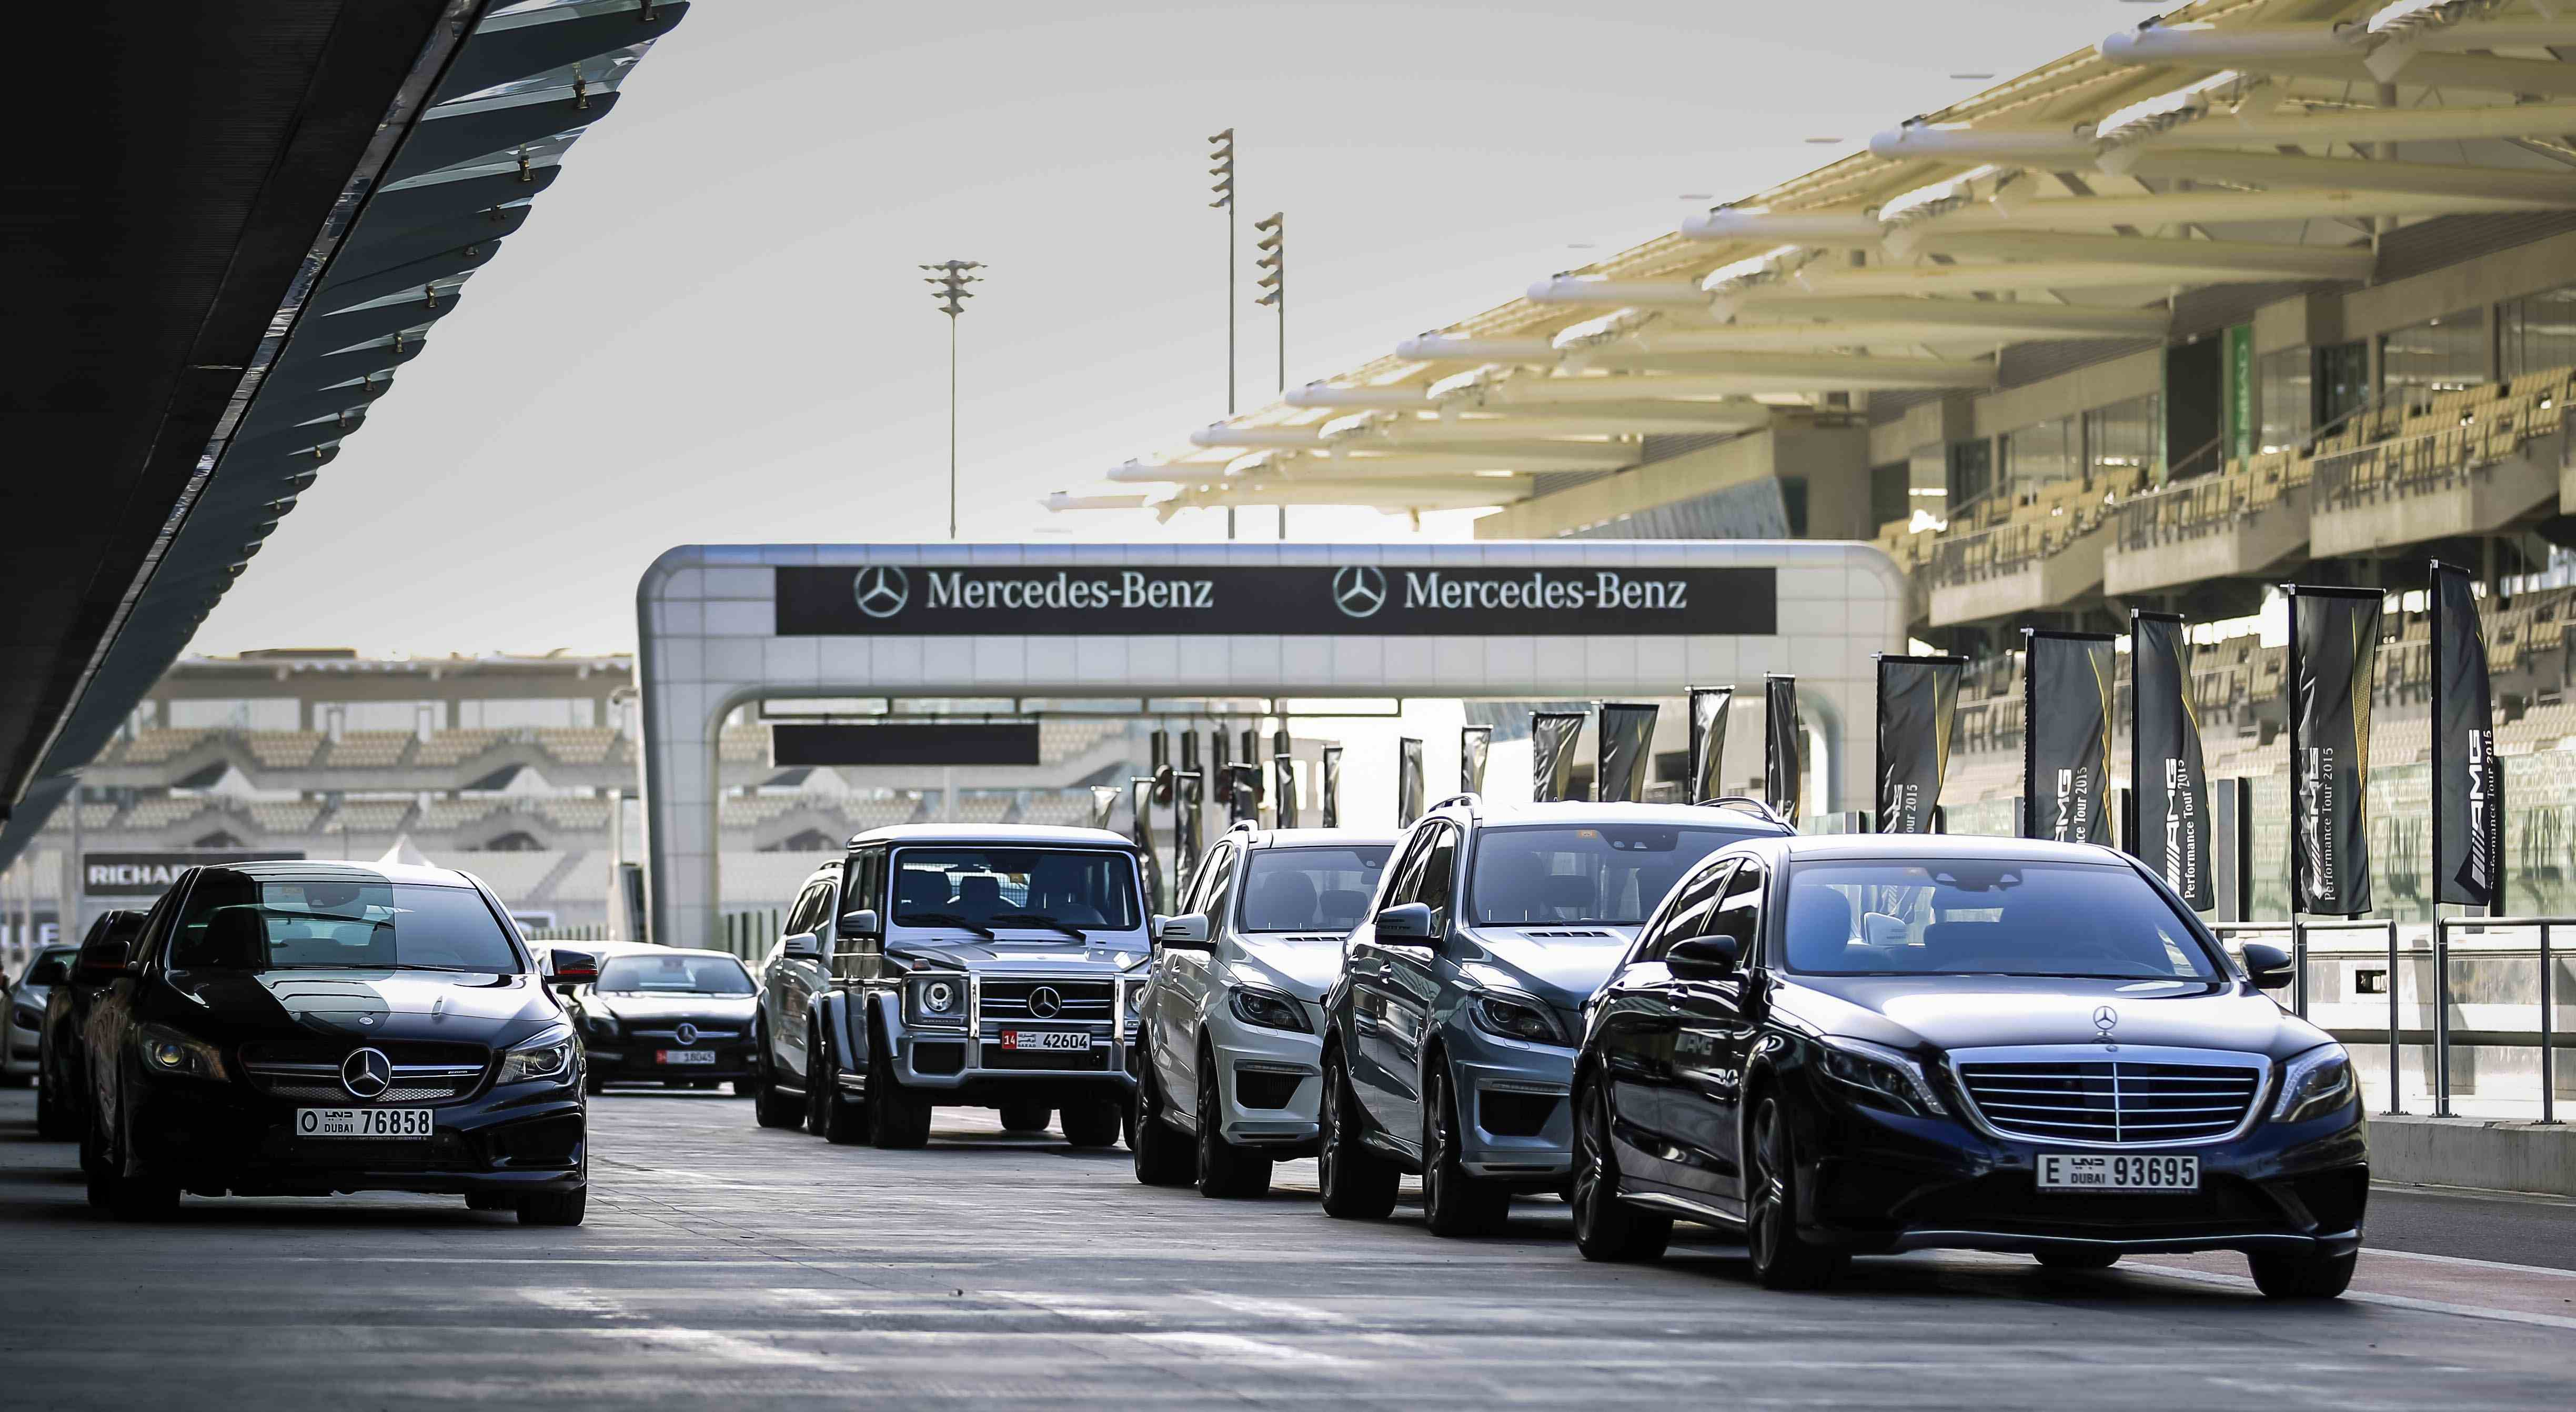 AMG Performance Tour 2015 driving experience